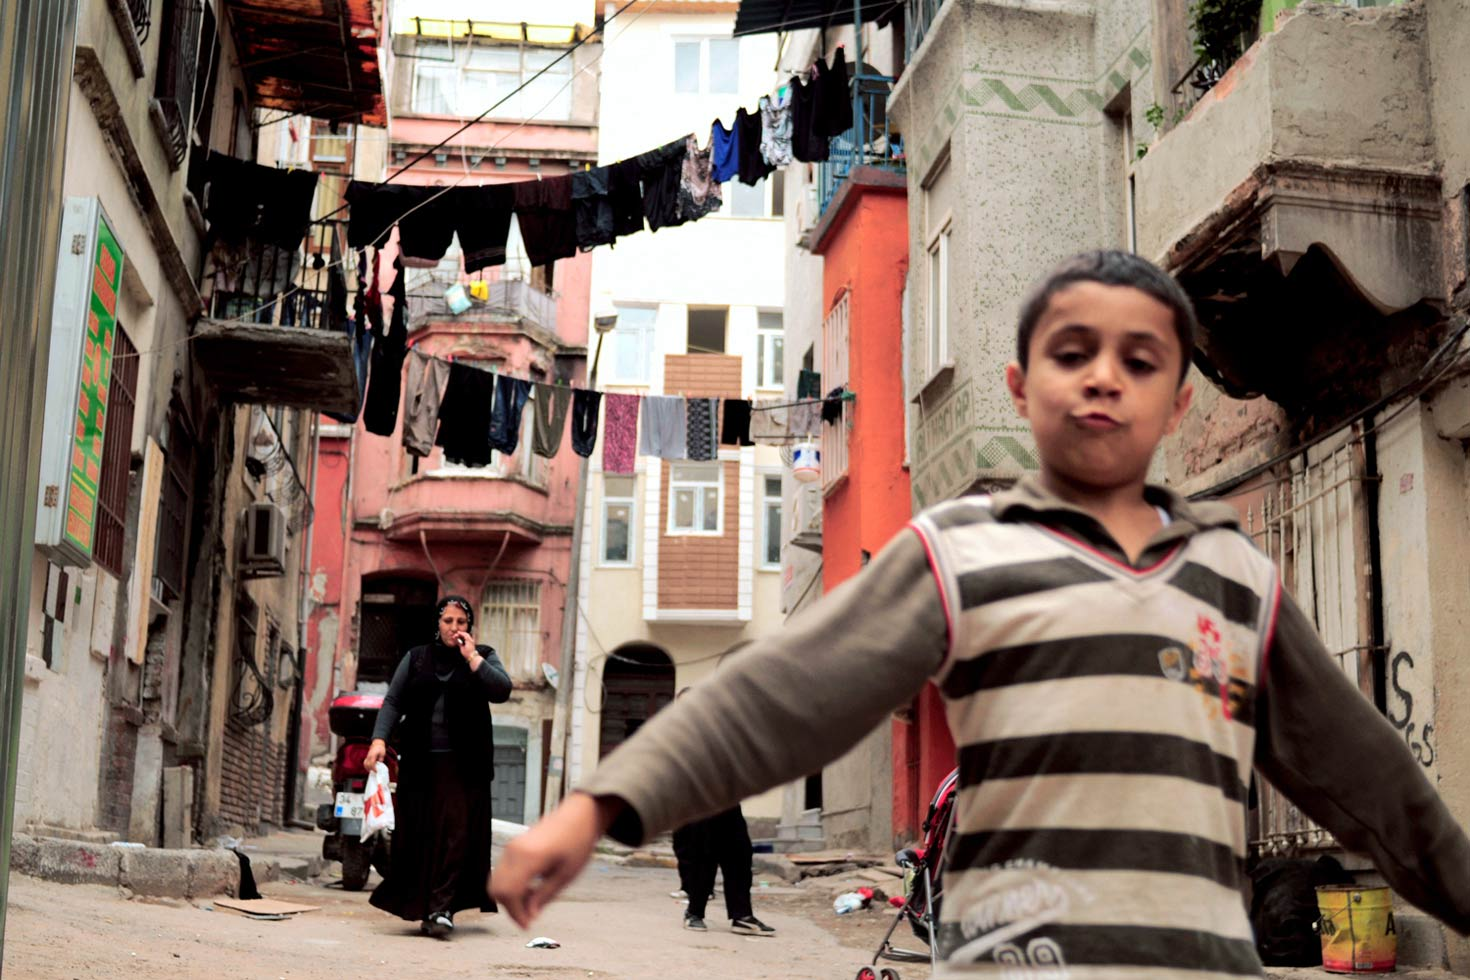 This is a joint project by Marianna Francese & Jaad Gaillet about Tarlabasi, a neighbourhood in the Beyoglu district in Istanbul, Turkey, that dates back to the 16th century. Located a few minutes from the famous Taksim Square and Gezi Park, it was in the labyrinthine streets of Tarlabasi that the protesters refuged from the police during the last months of protests.